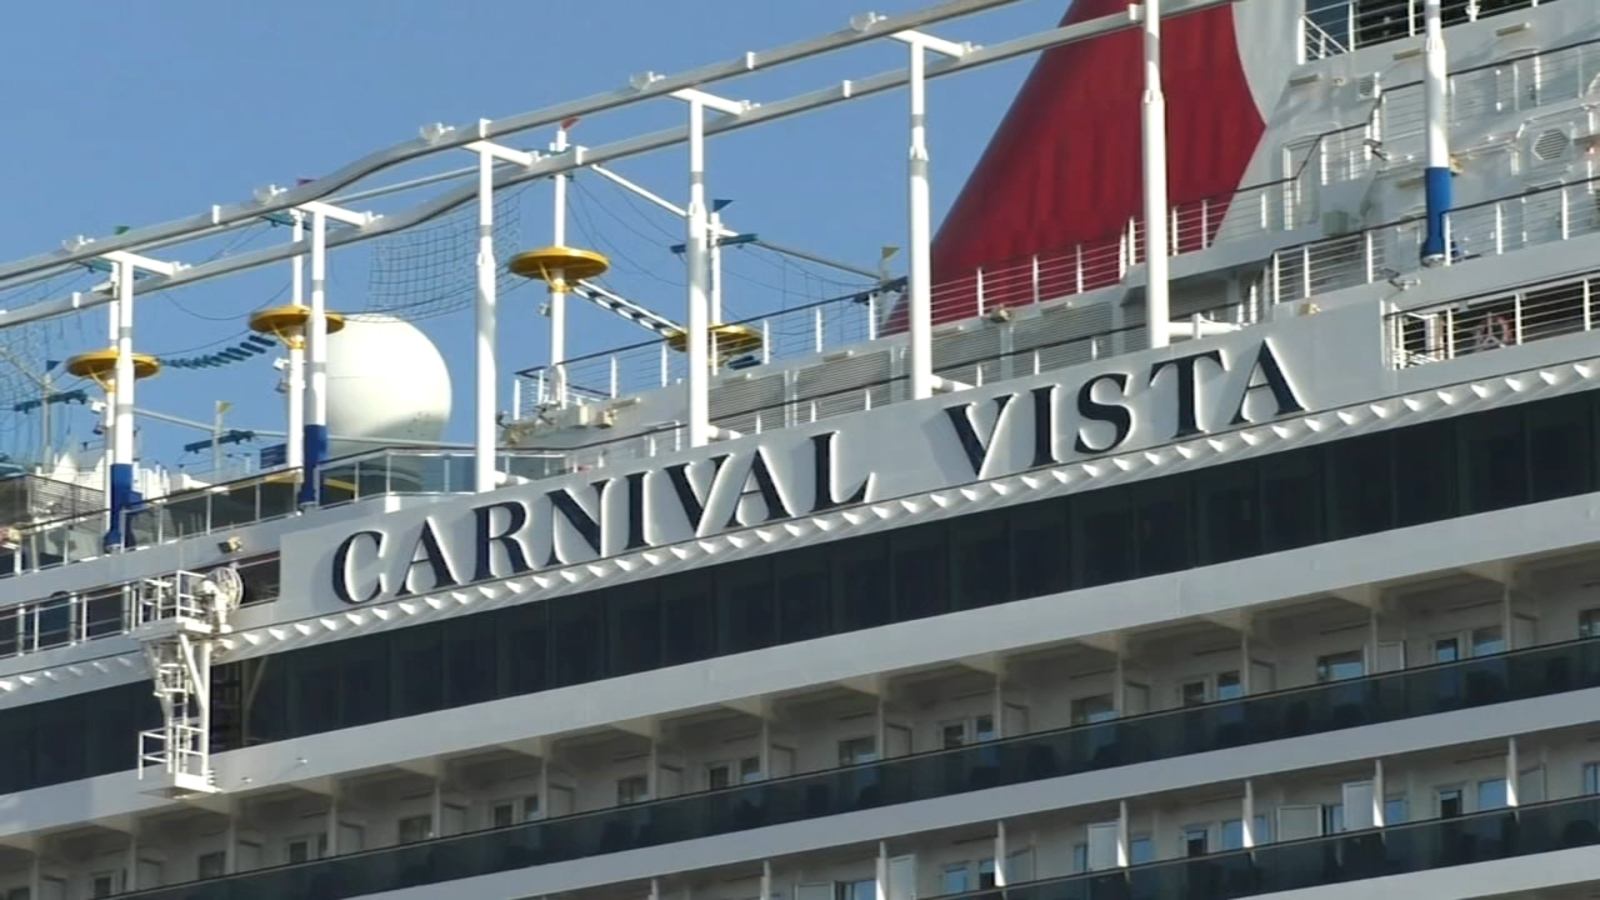 Oklahoma woman dies after testing positive for COVID-19 aboard Carnival cruise ship